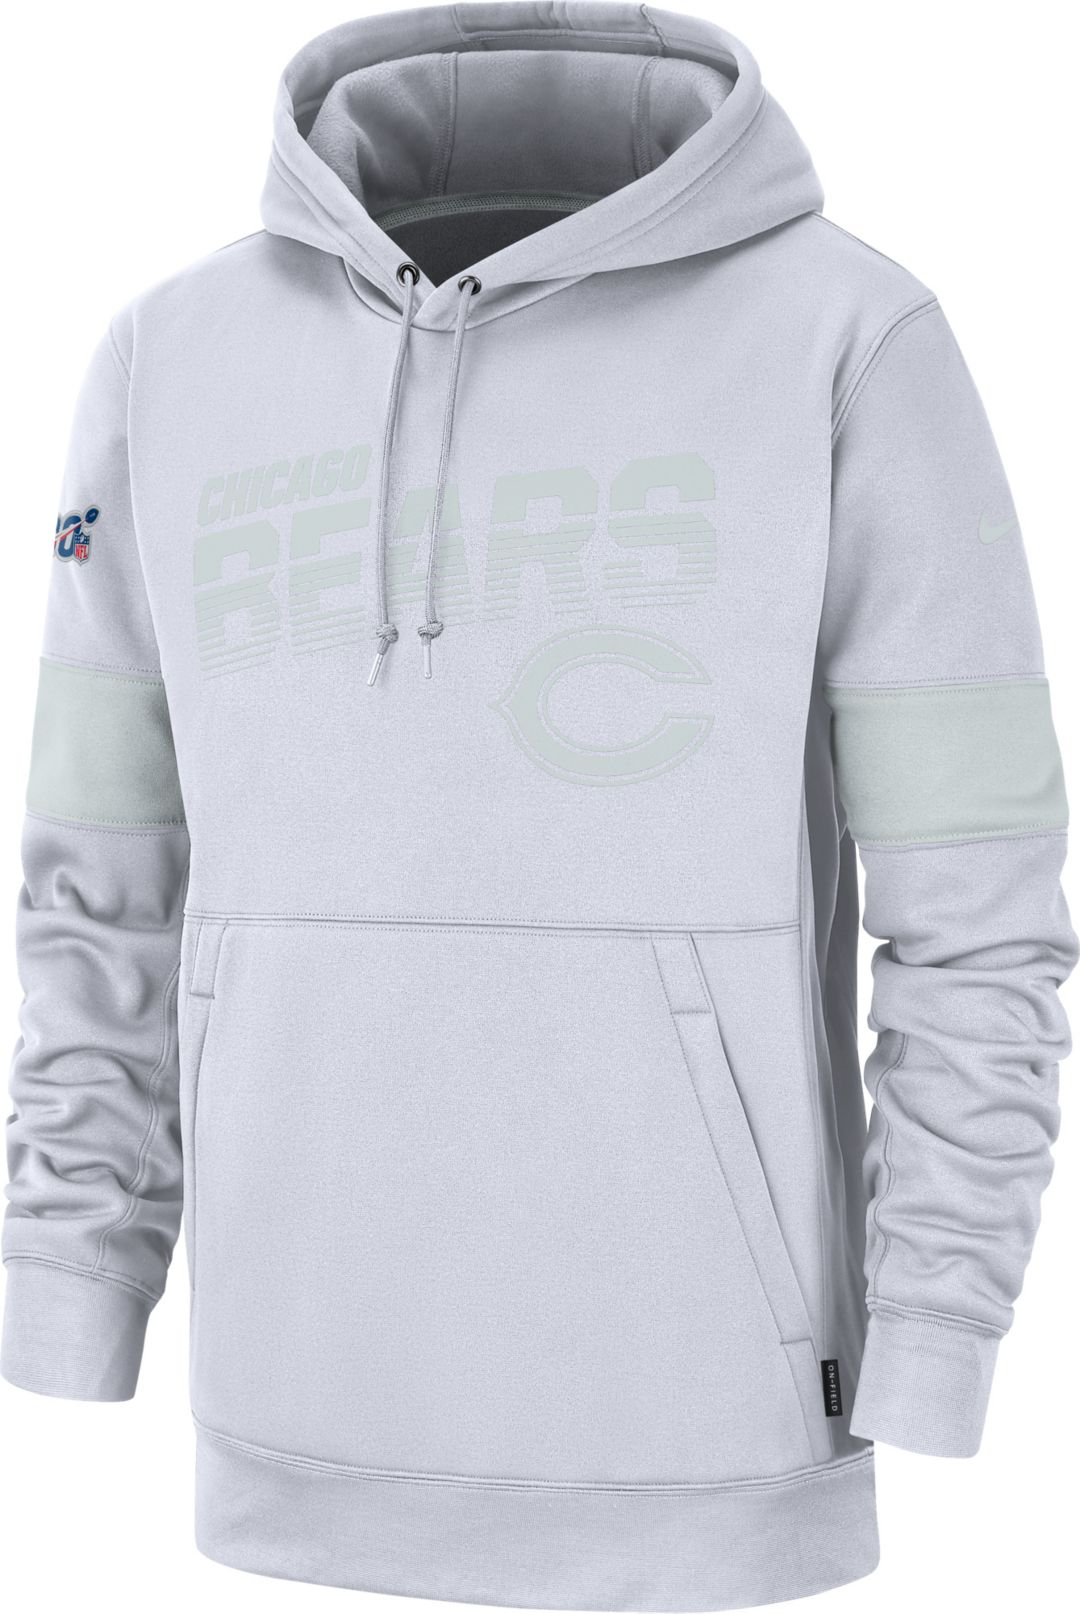 competitive price f2a9b b6565 Nike Men's Chicago Bears 100th Sideline Therma-FIT Pullover White Hoodie